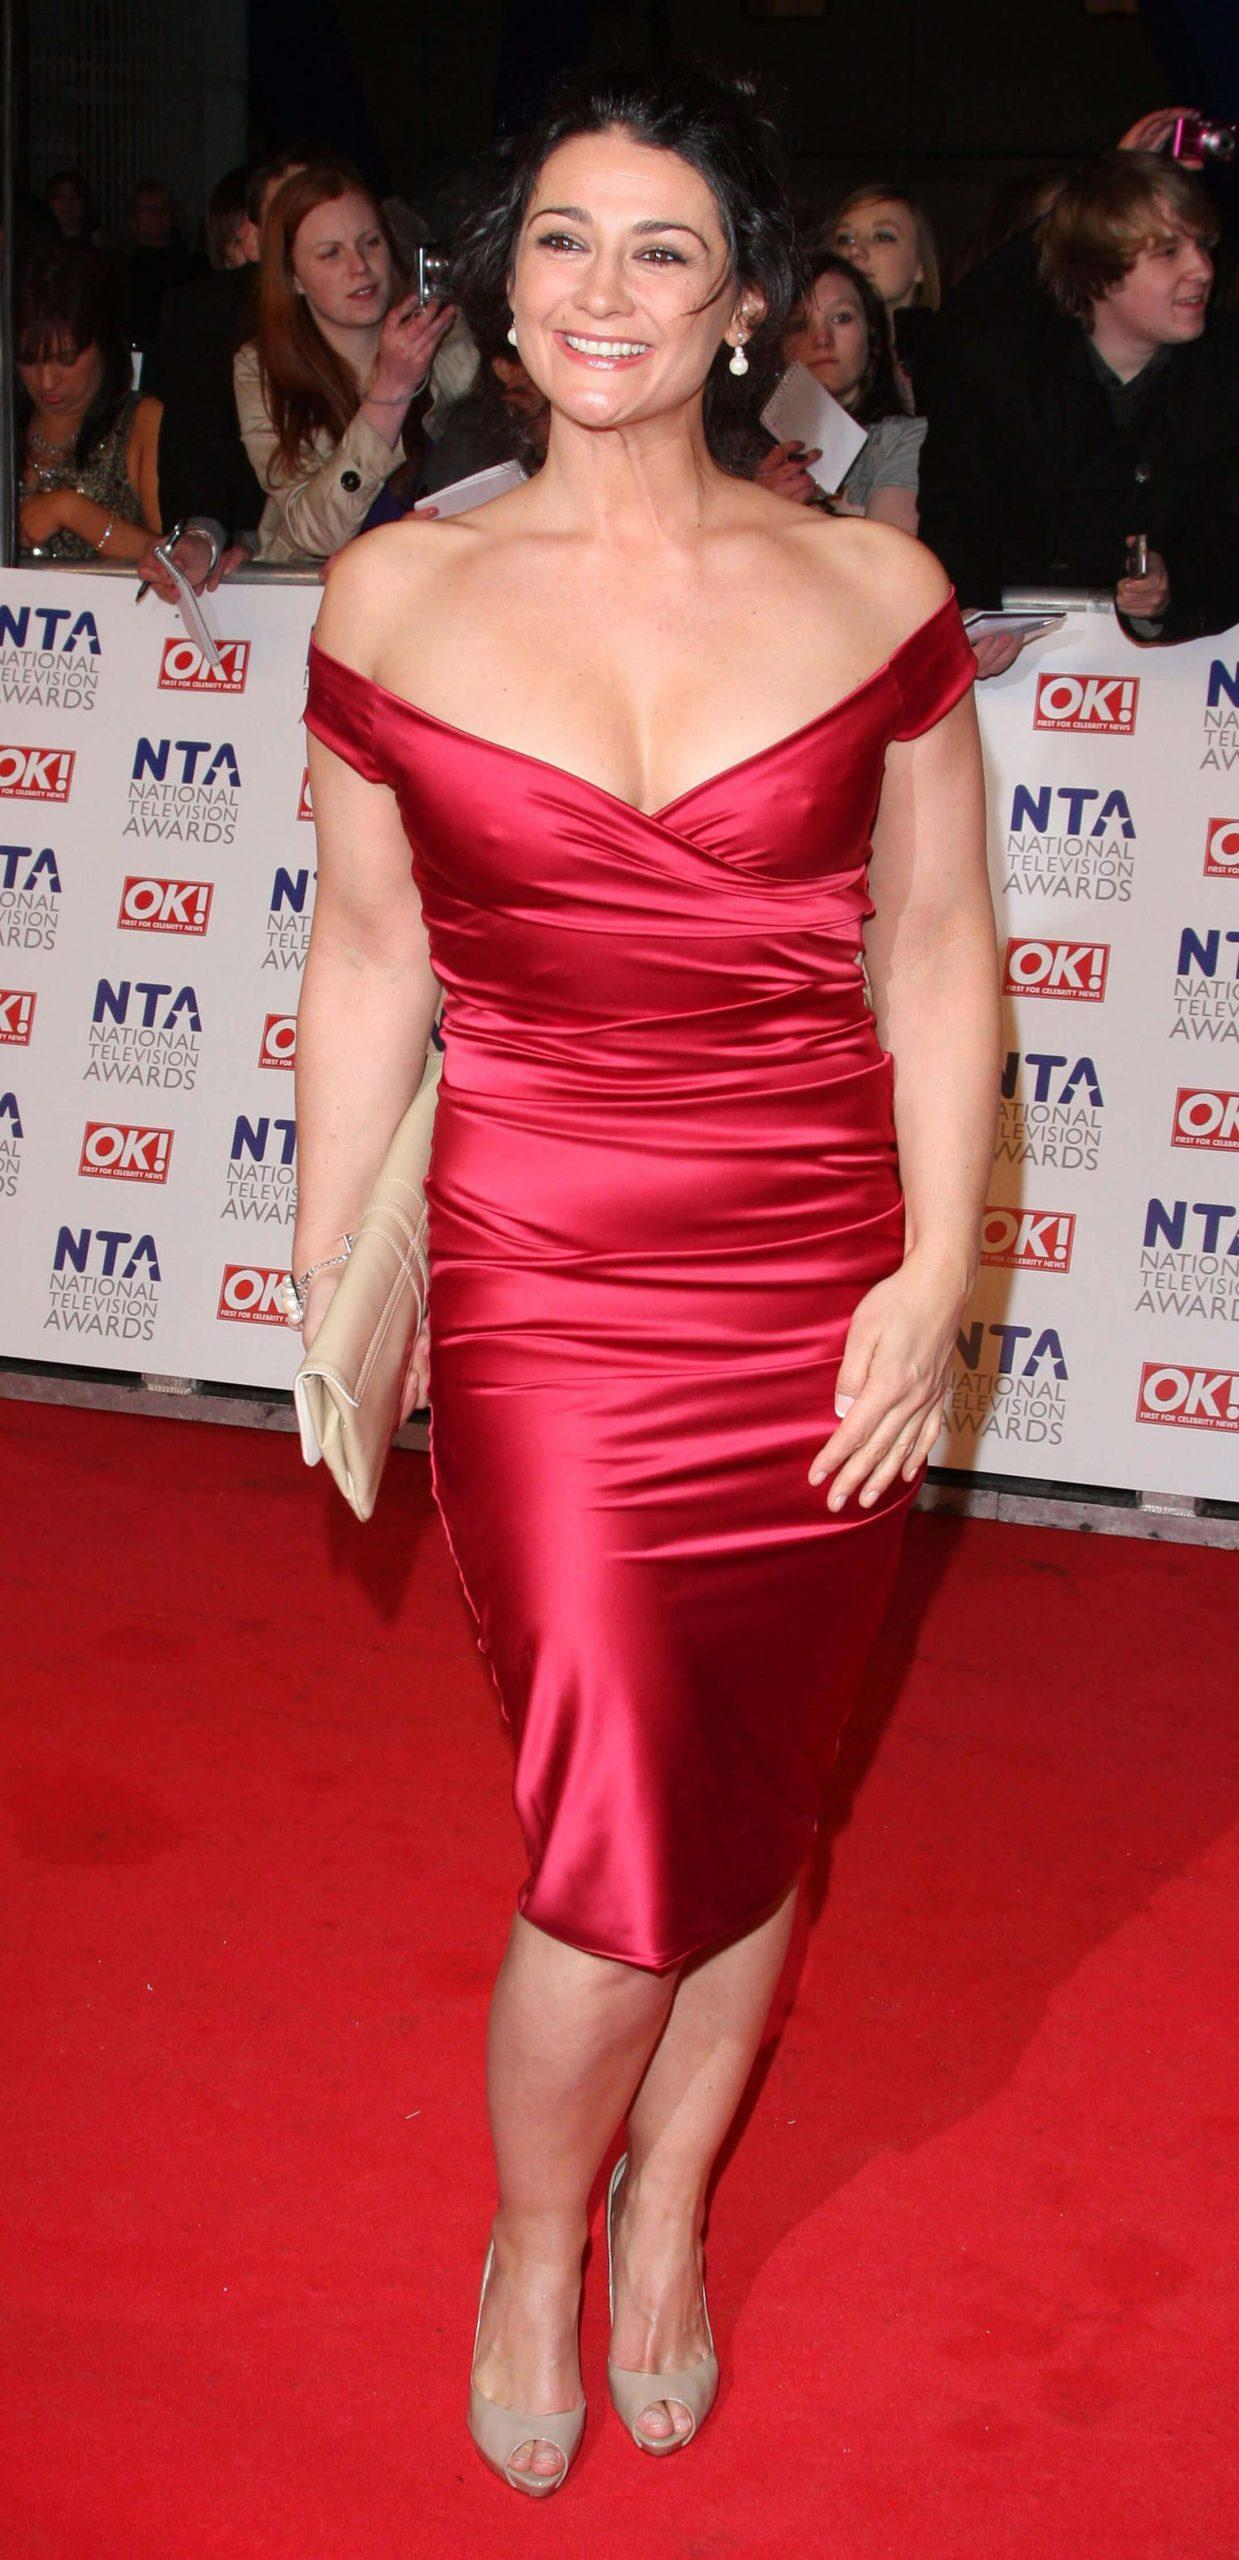 Natalie J. Robb busty pictures